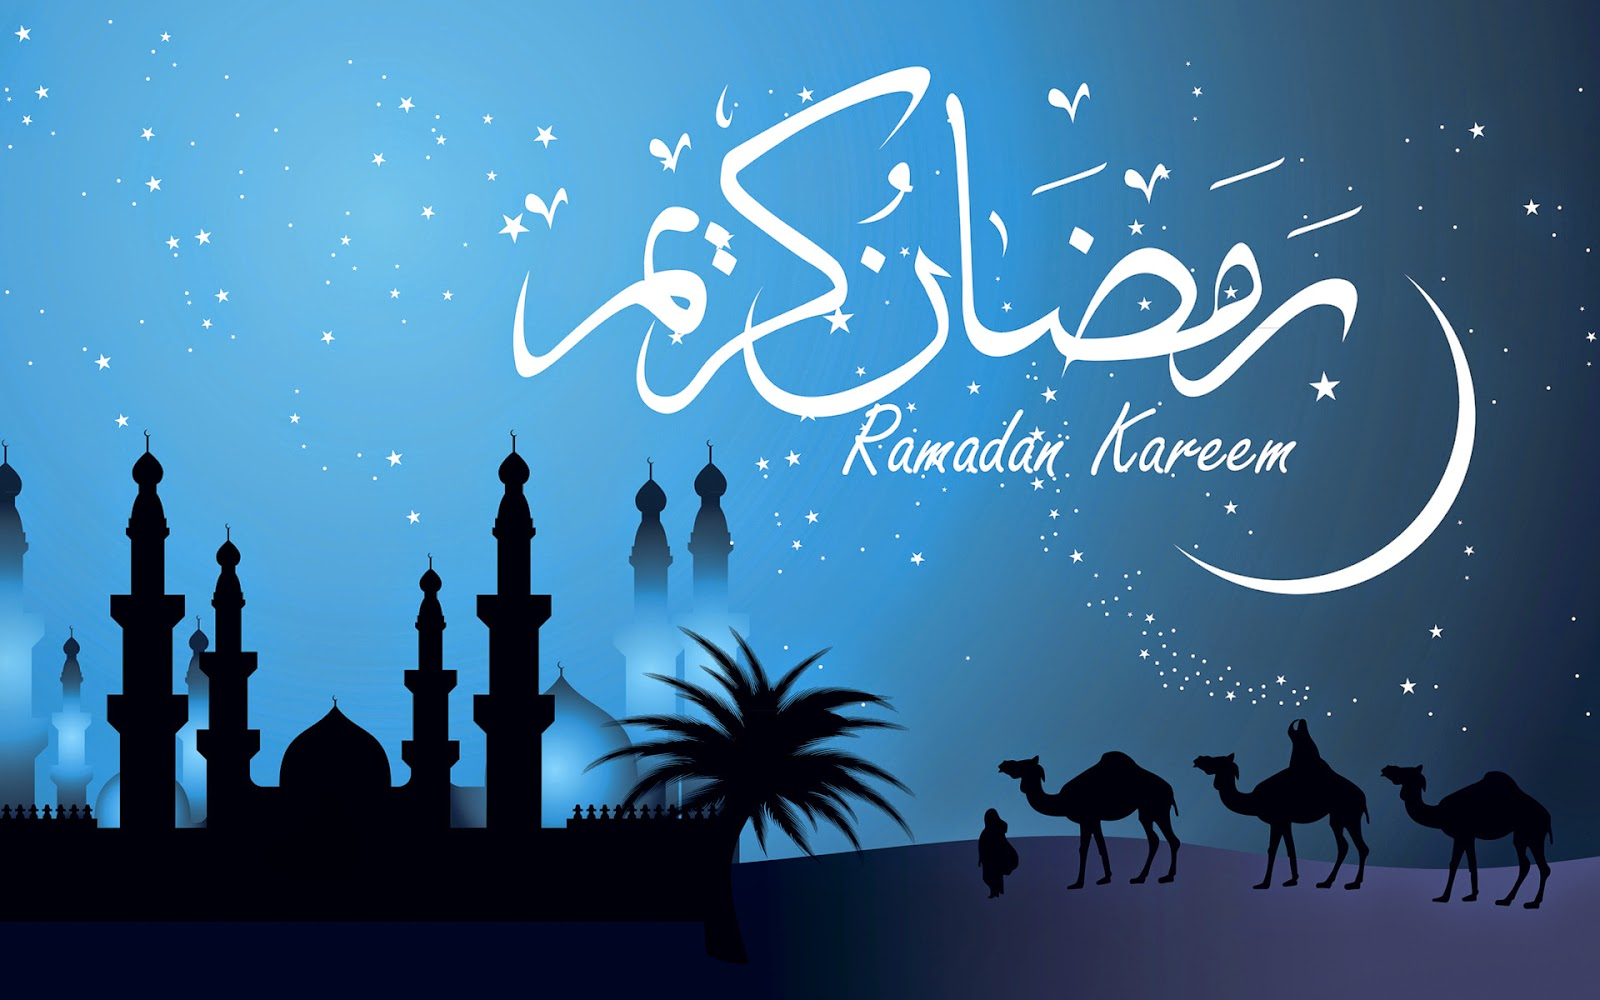 http://www.picturesnew.com/media/images/ramadan-2014-wallpaper-picture.jpg